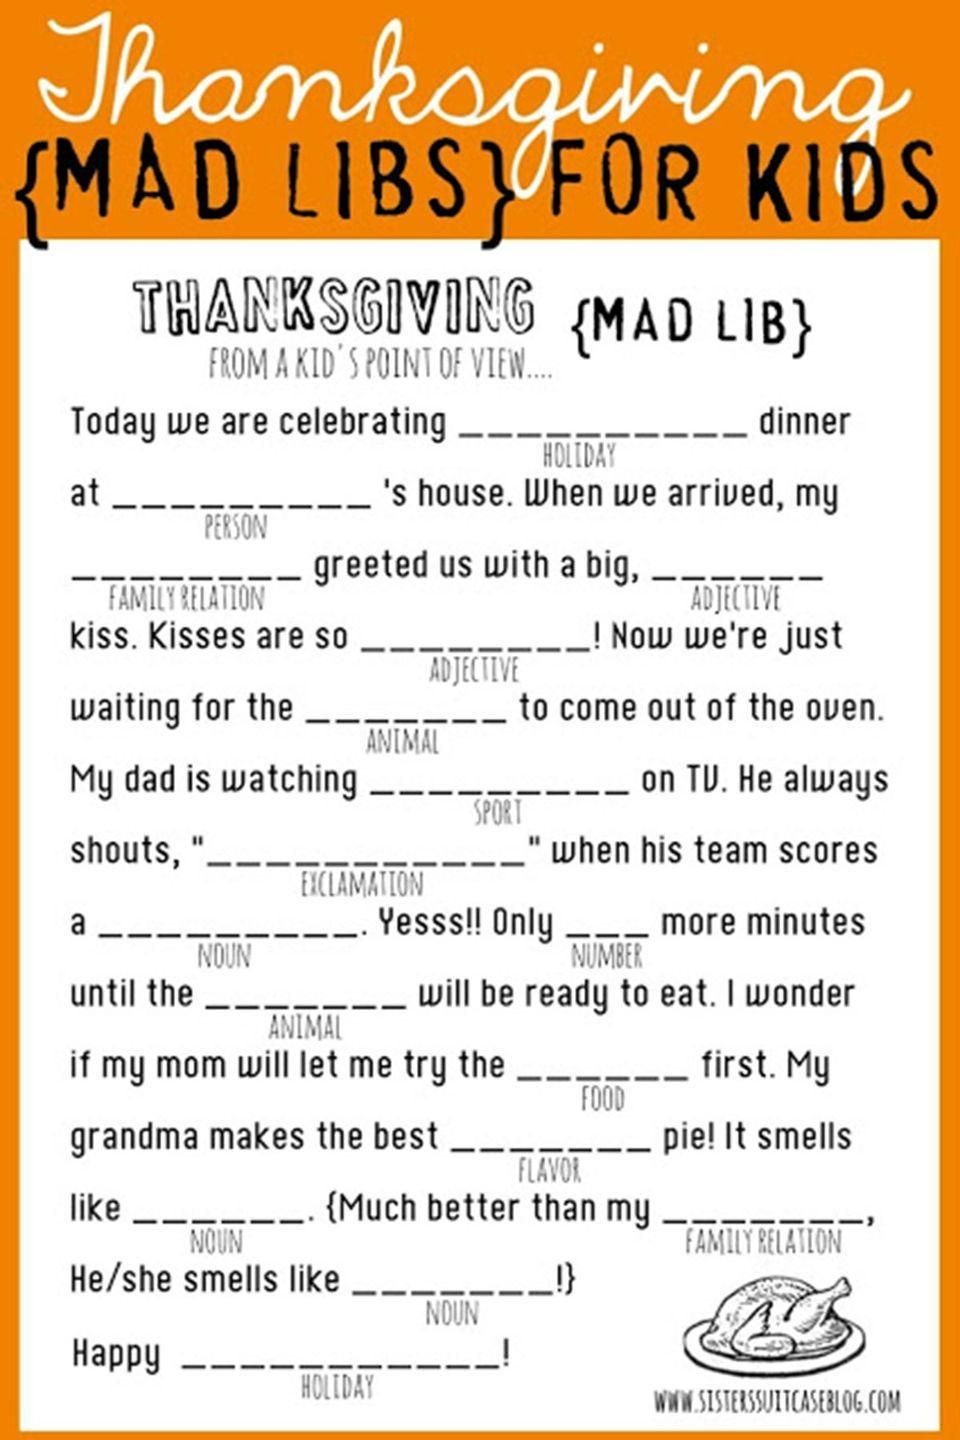 """<p>Print some of these for the <a href=""""https://www.countryliving.com/entertaining/g1201/thanksgiving-kids-table-ideas/"""" rel=""""nofollow noopener"""" target=""""_blank"""" data-ylk=""""slk:kids table this Thanksgiving"""" class=""""link rapid-noclick-resp"""">kids table this Thanksgiving</a>—it's sure to keep them laughing until dessert.</p><p><strong>Get the tutorial at <a href=""""http://www.sisterssuitcaseblog.com/thanksgiving-mad-libs-printable/"""" rel=""""nofollow noopener"""" target=""""_blank"""" data-ylk=""""slk:My Sister's Suitcase"""" class=""""link rapid-noclick-resp"""">My Sister's Suitcase</a>. </strong></p><p><a class=""""link rapid-noclick-resp"""" href=""""https://www.amazon.com/Neenah-Bright-Cardstock-Sheets-90905/dp/B003A2I5T8/?tag=syn-yahoo-20&ascsubtag=%5Bartid%7C10050.g.4698%5Bsrc%7Cyahoo-us"""" rel=""""nofollow noopener"""" target=""""_blank"""" data-ylk=""""slk:SHOP CARDSTOCK PAPER"""">SHOP CARDSTOCK PAPER</a></p>"""